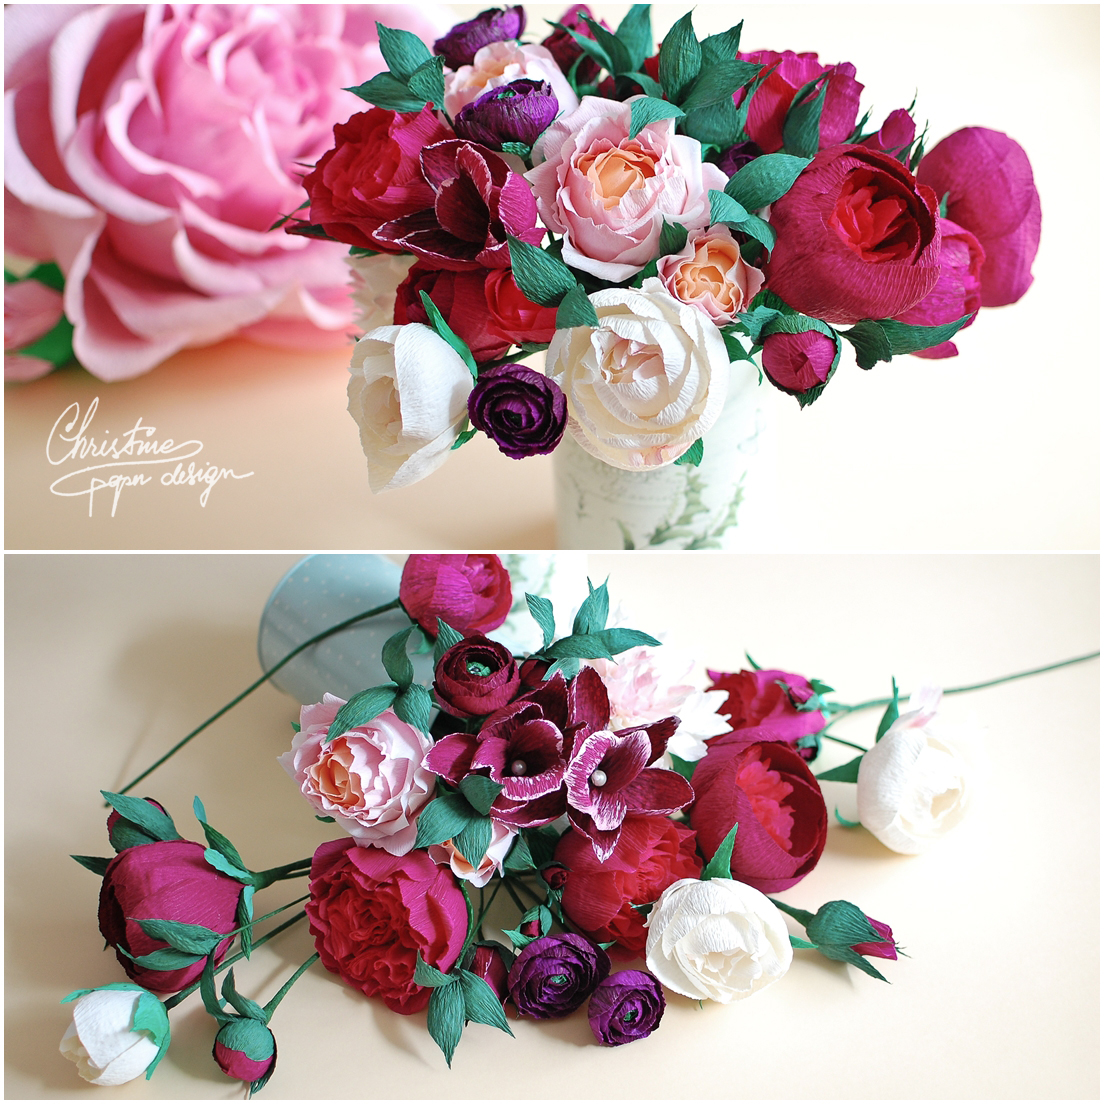 8Christine paper design - paper flowers2